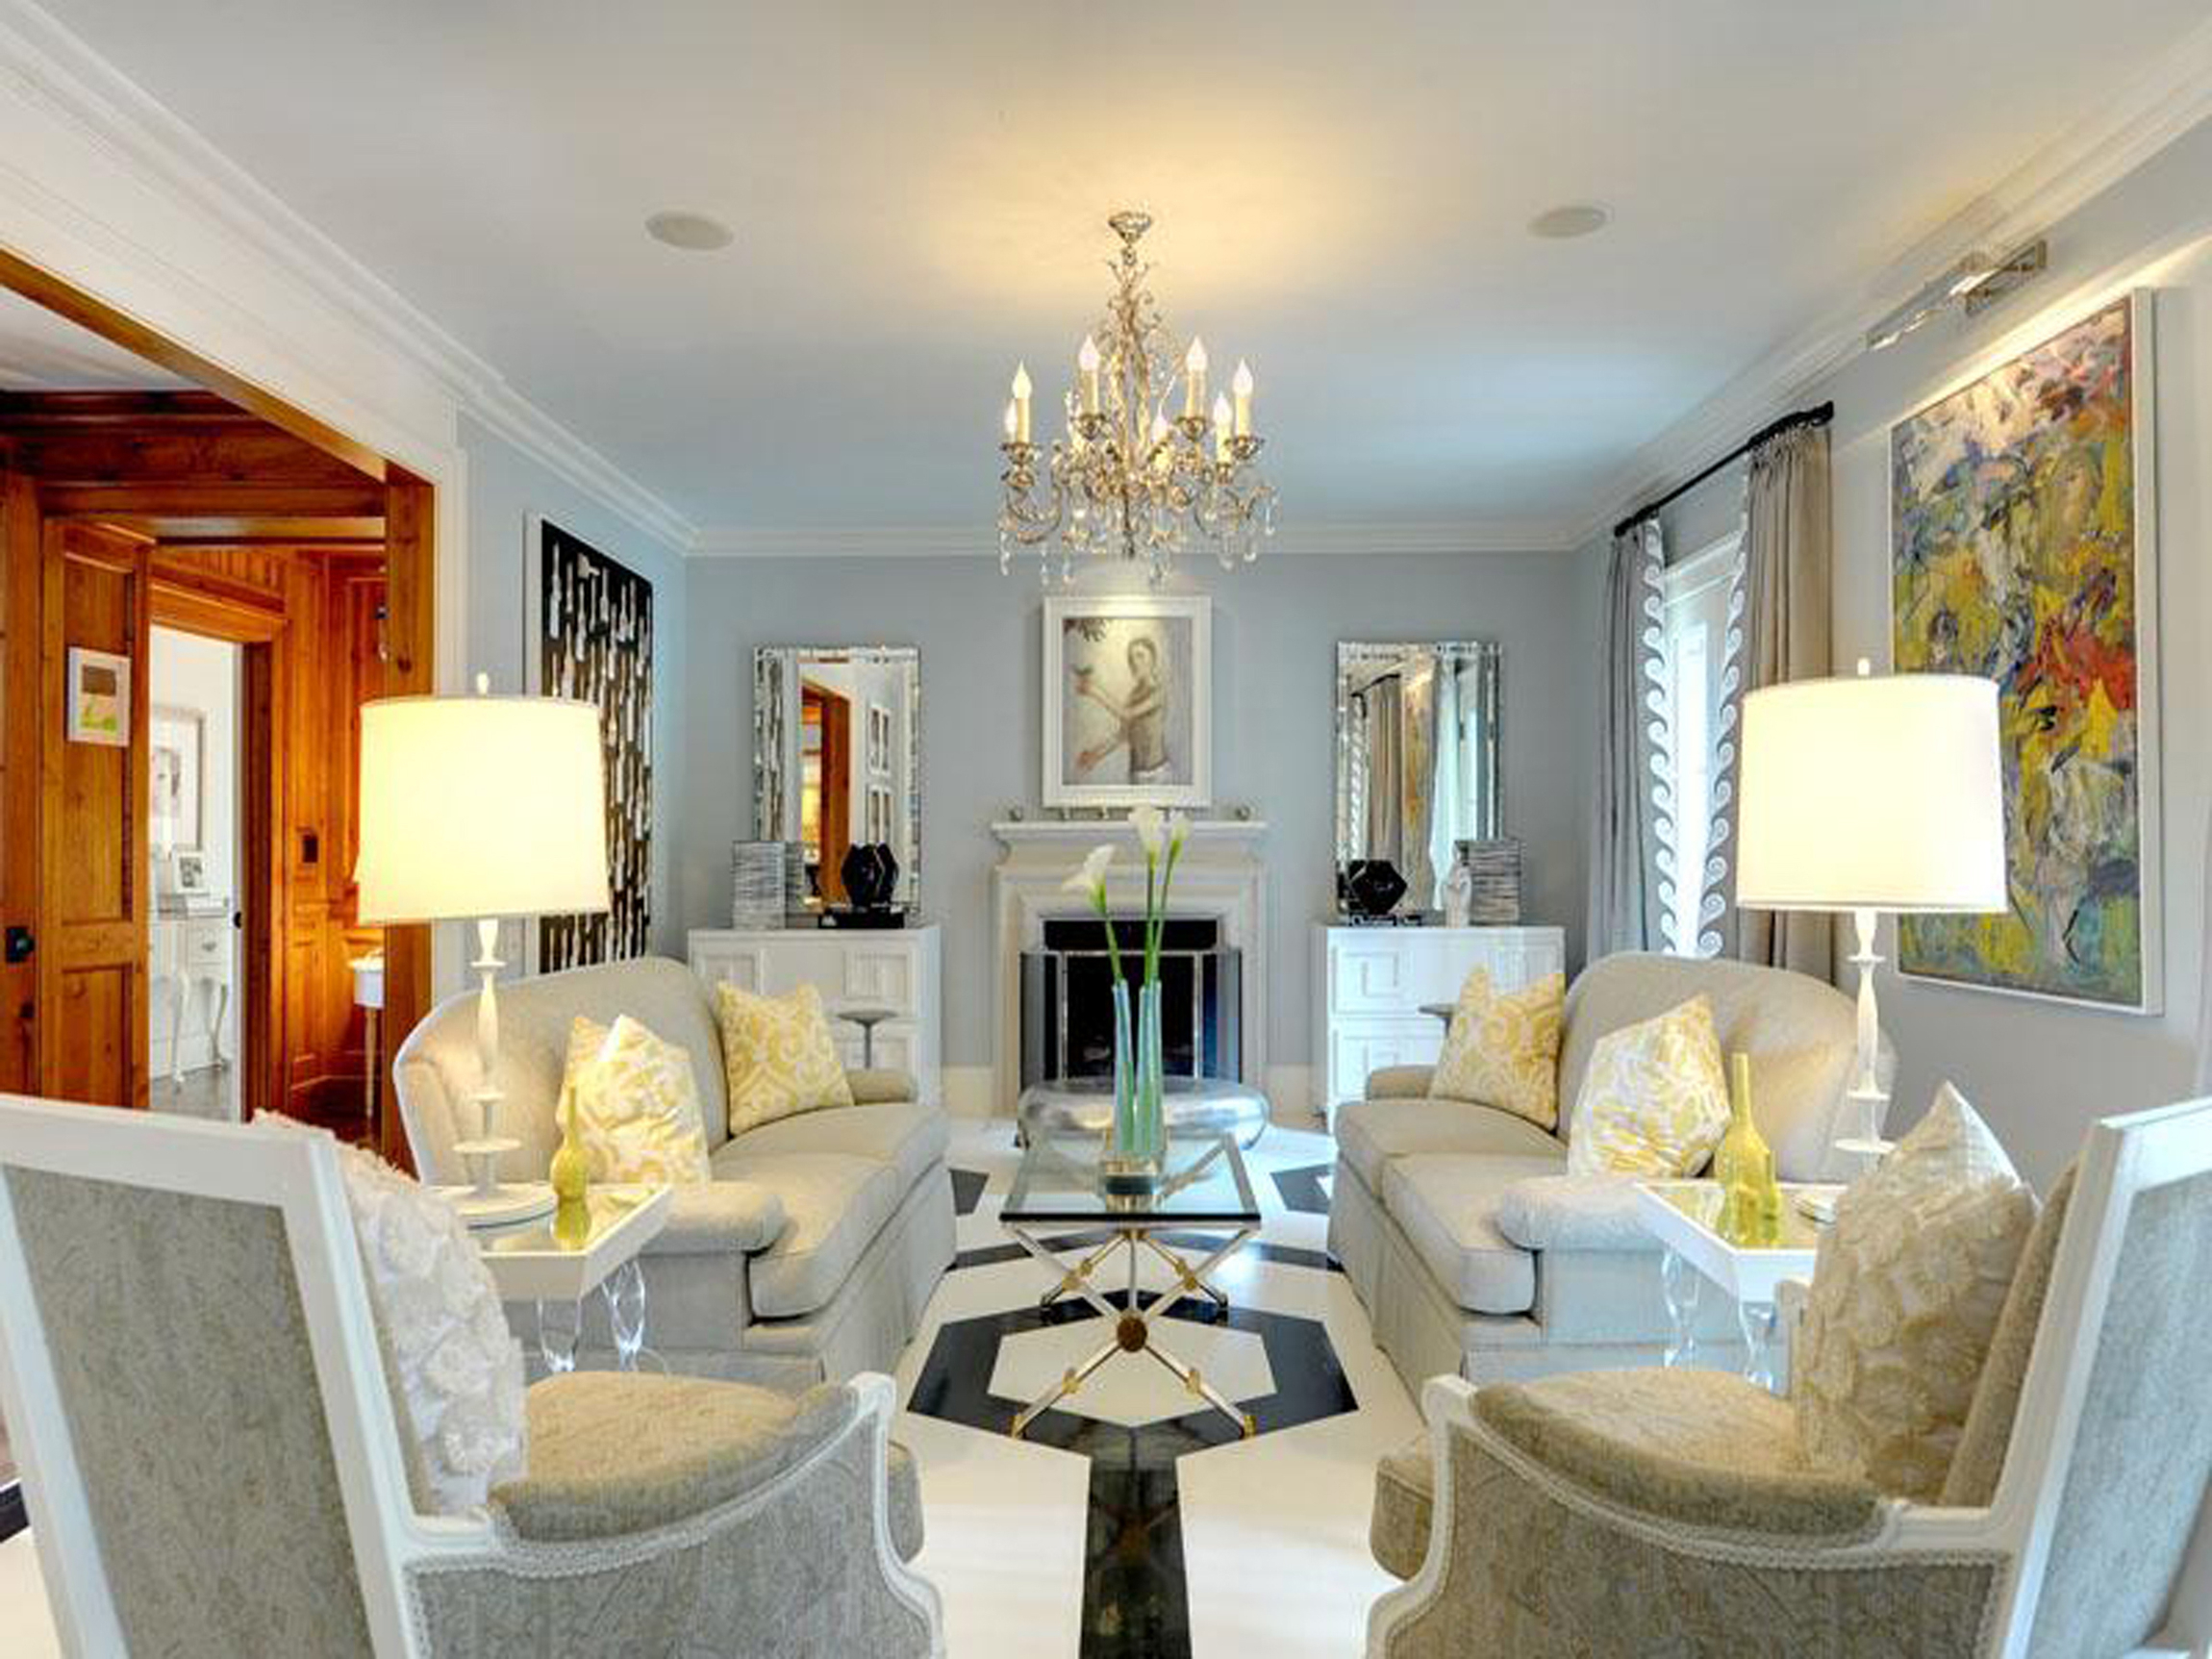 Luxurious White Living Room Decor (Image 34 of 123)